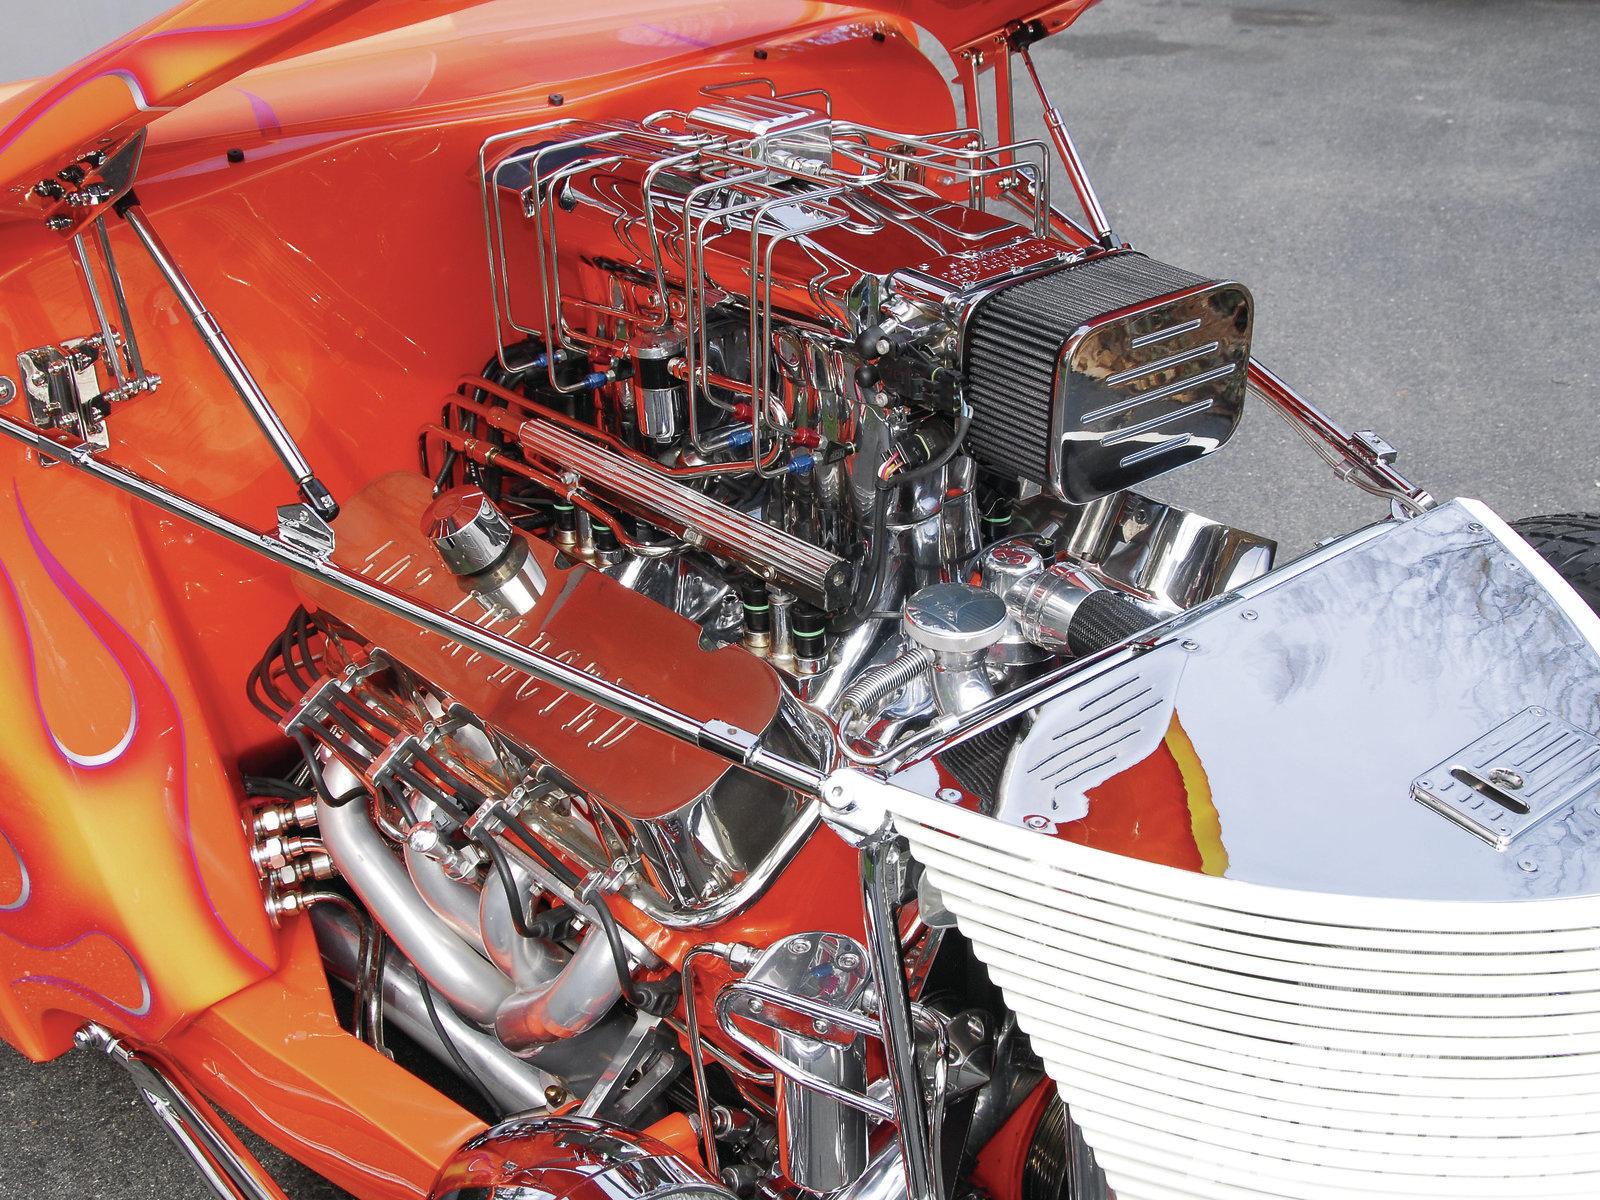 For plenty of seamless power, Street & Performance designed an ultra-detailed GM crate 502 big-block V-8 capped with their signature multi-port fuel injection topped with an NOS nitrous system to generate a stout 500 hp.